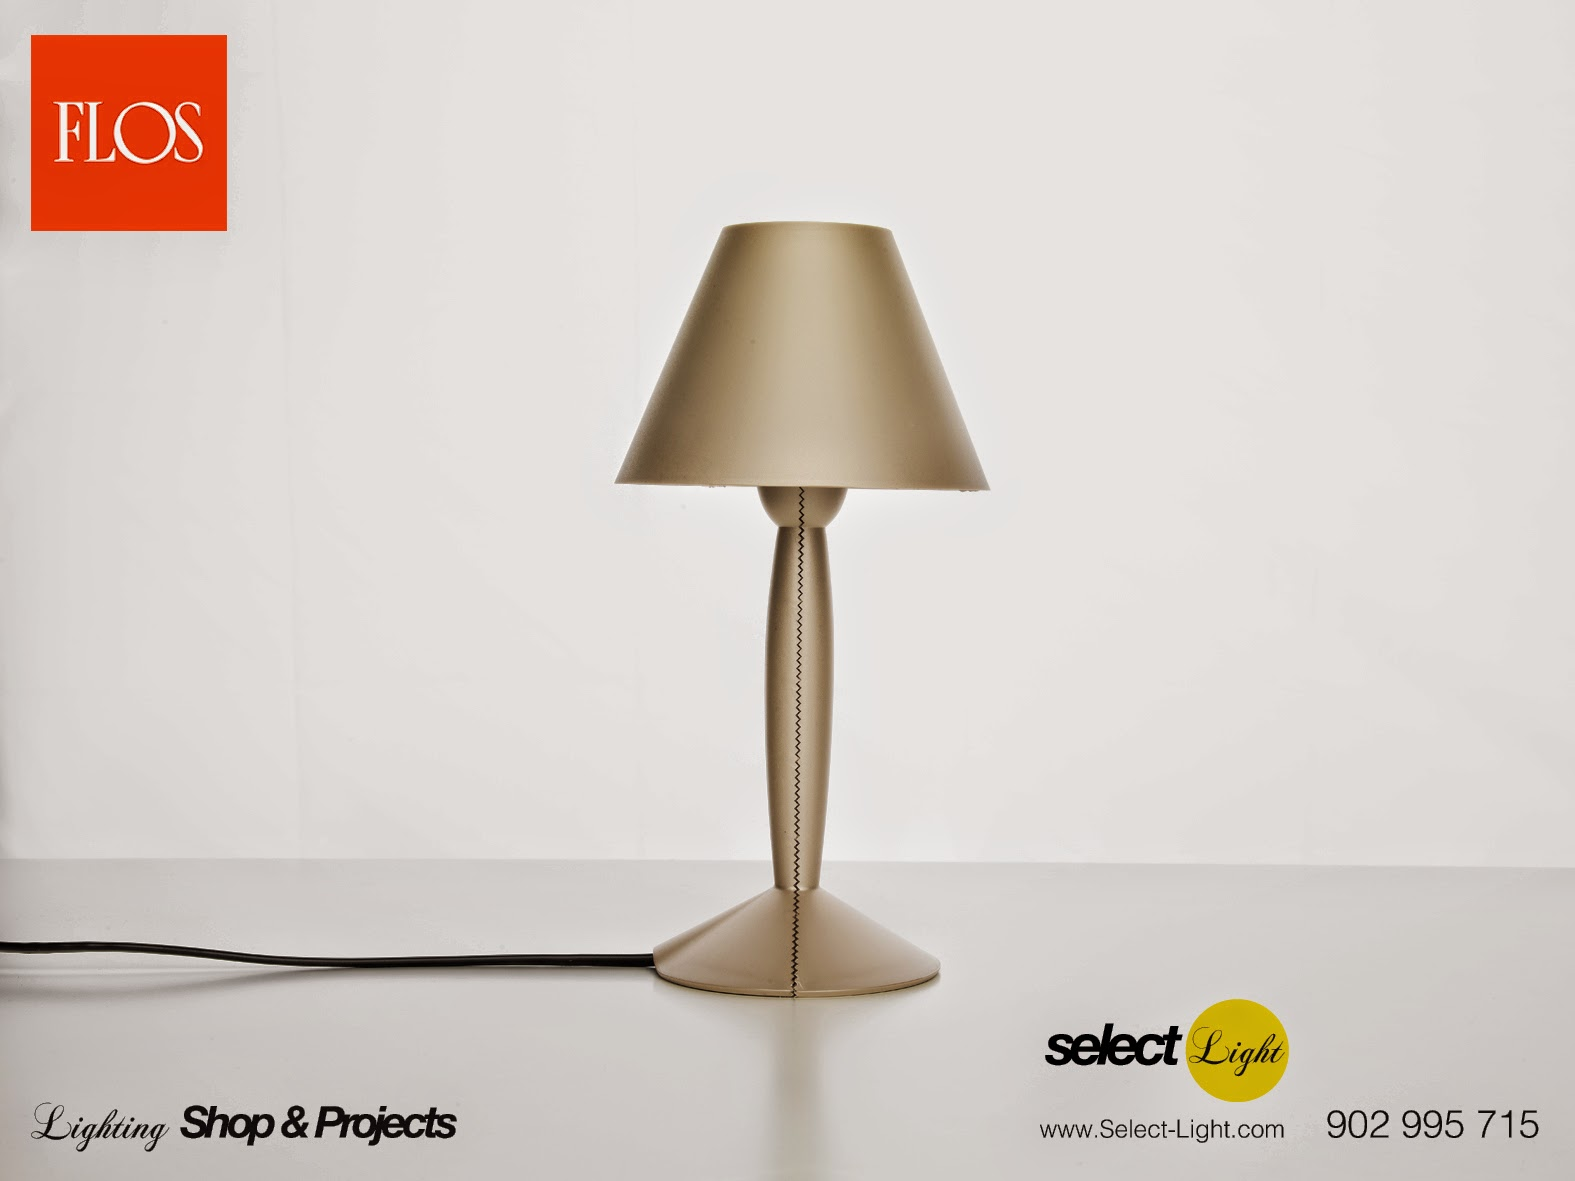 Miss Sissi By Flos & Philippe Starck